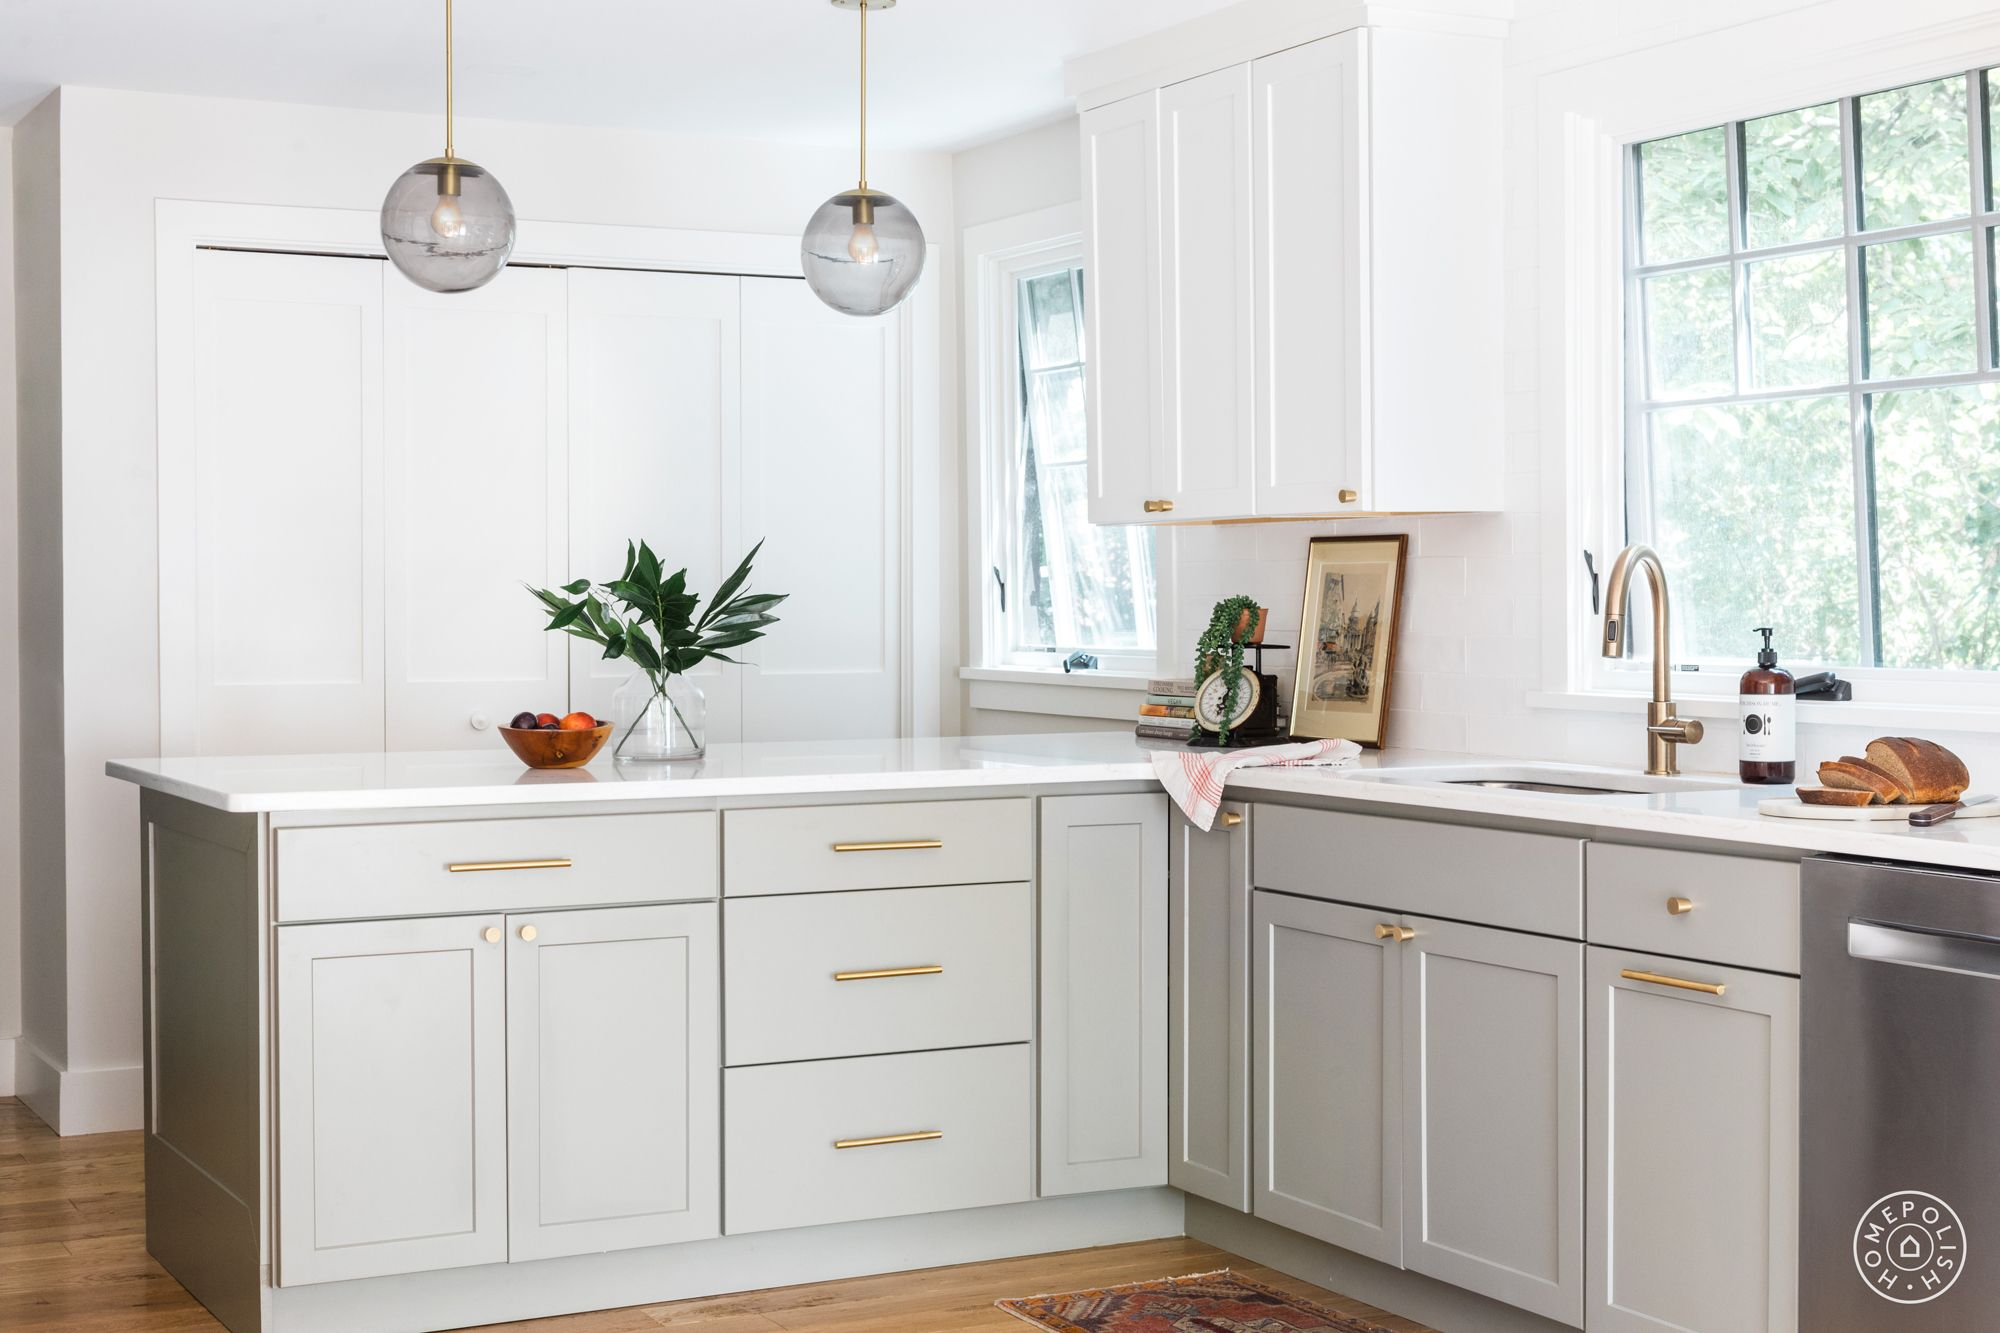 A Warm Welcome In Massachusetts Kitchen Layout Homepolish Kitchen Cabinet Colors